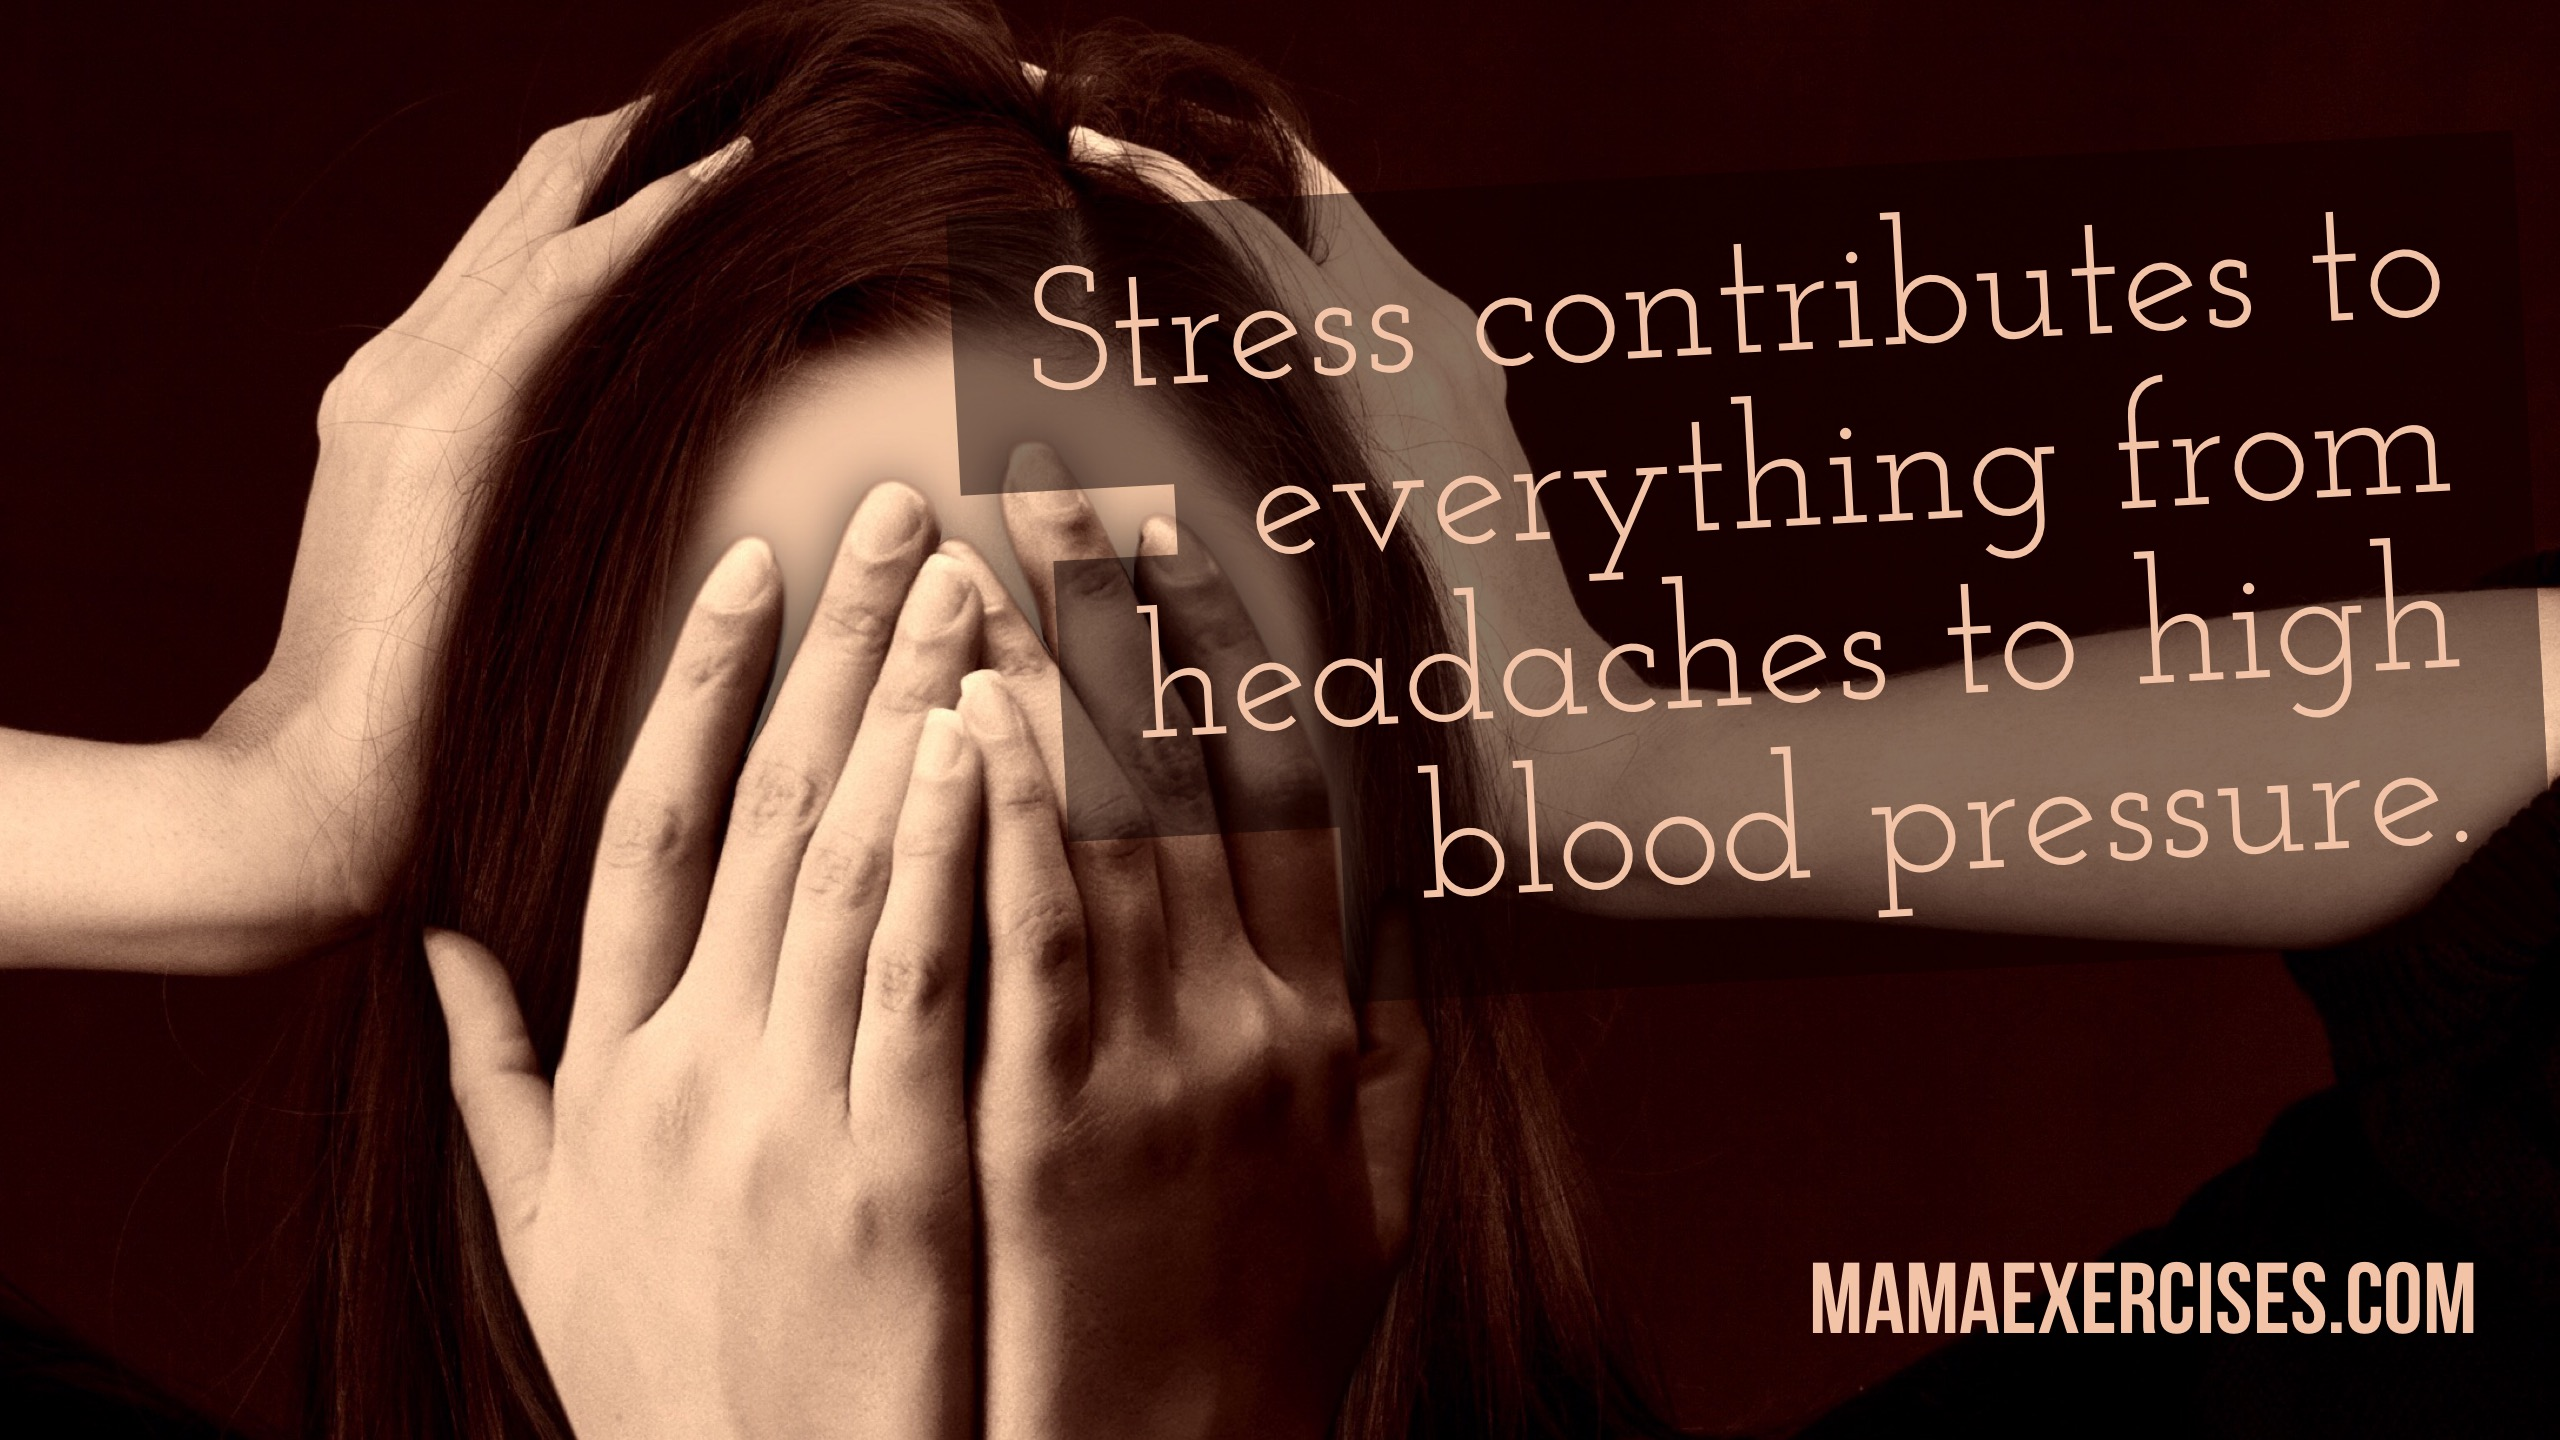 How Stress Can Affect Your Health and Your Body - MamaExercises.com